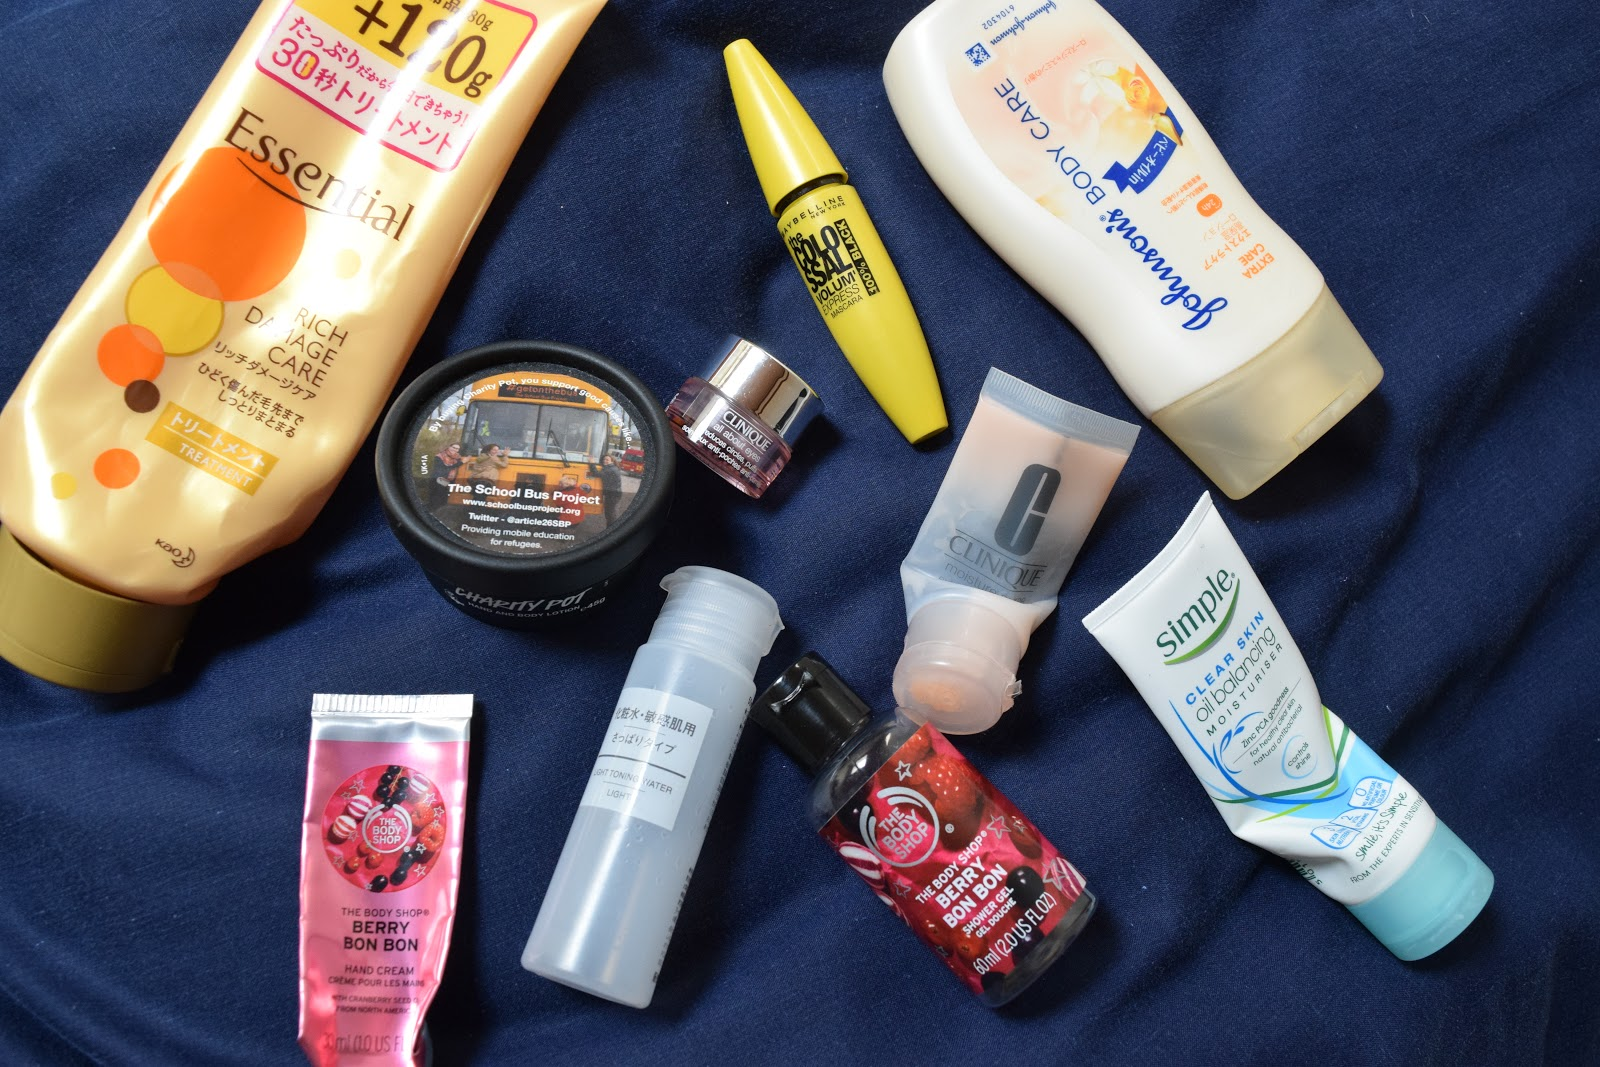 flatlay of empty beauty products including lush, muji, hair essentials and the body shop